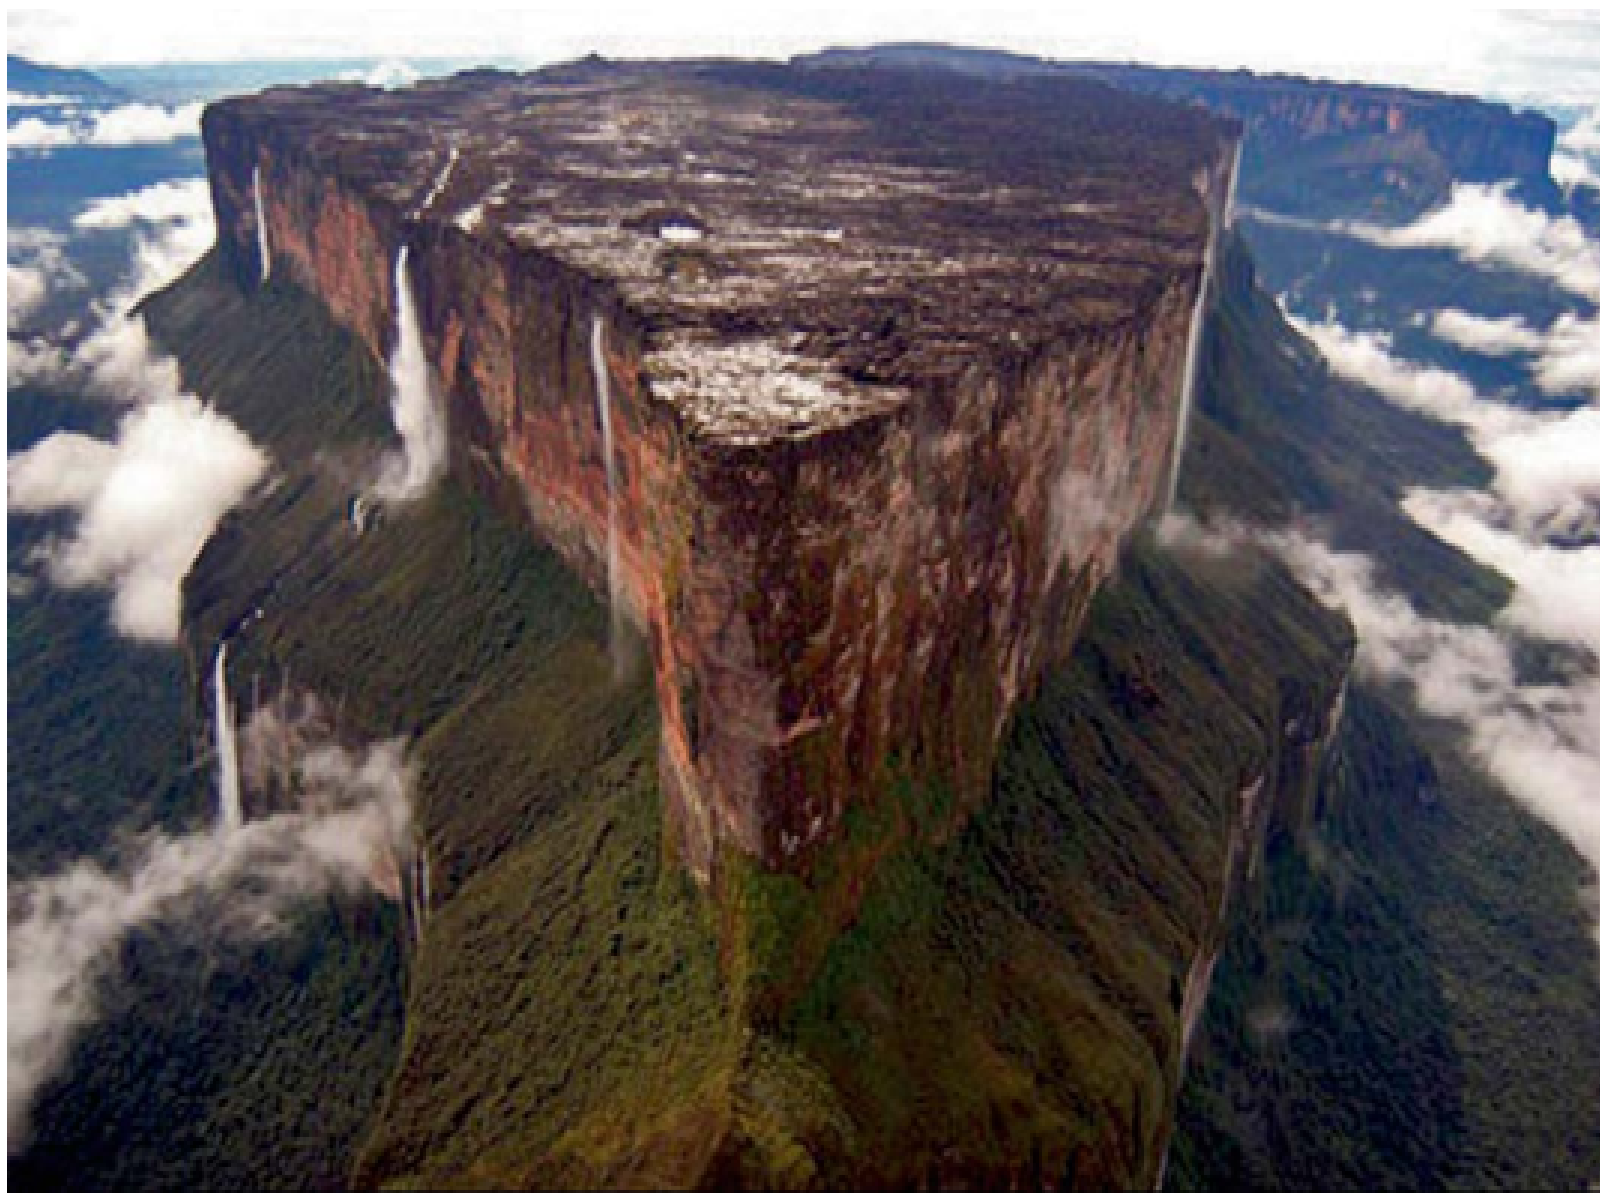 13. The Mount Roraima, Venezuela